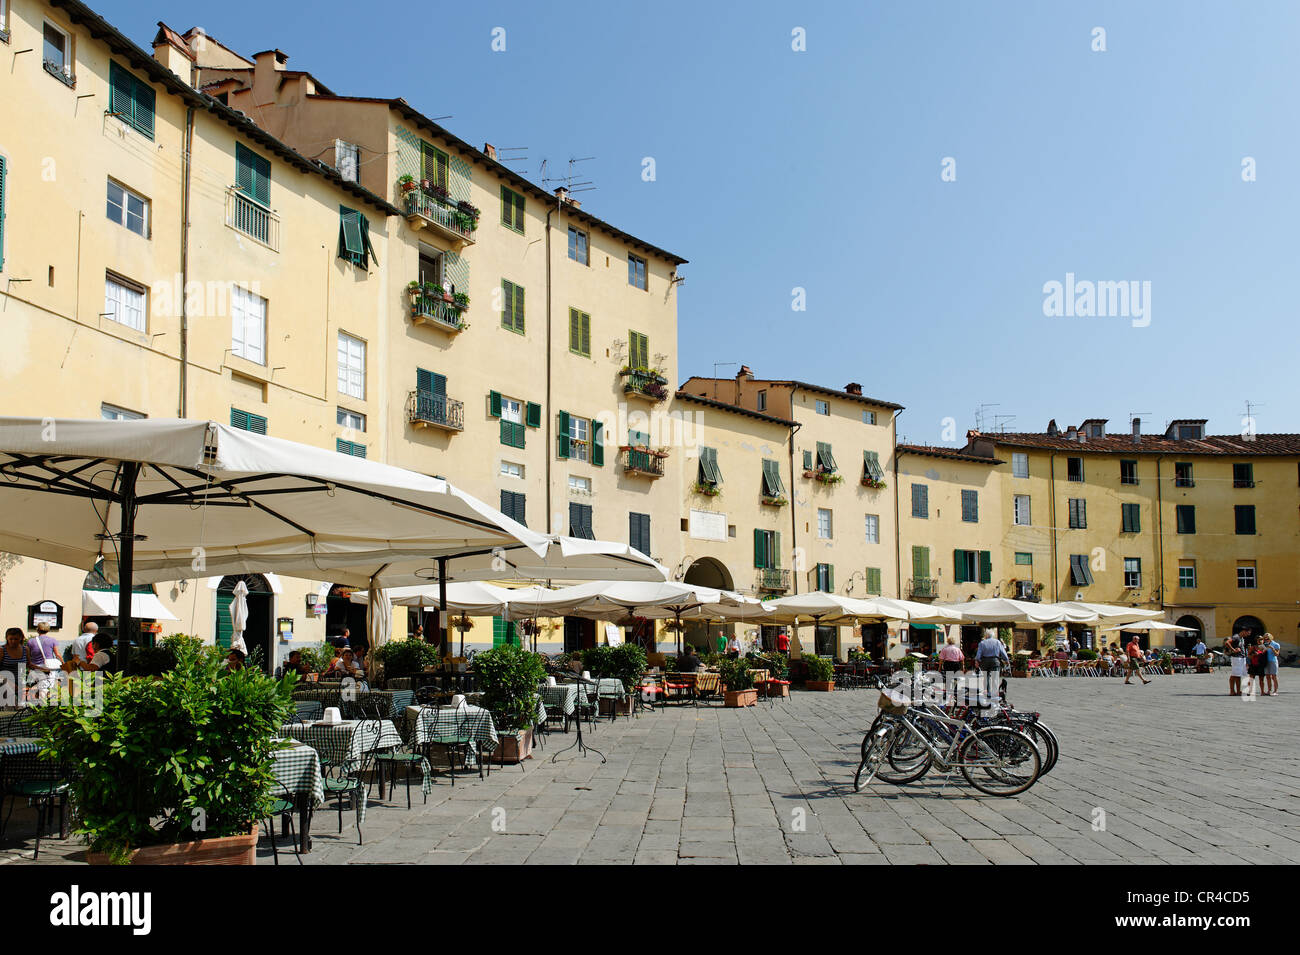 Piazza Anfiteatro, Lucca, Tuscany, Italy, Europe - Stock Image